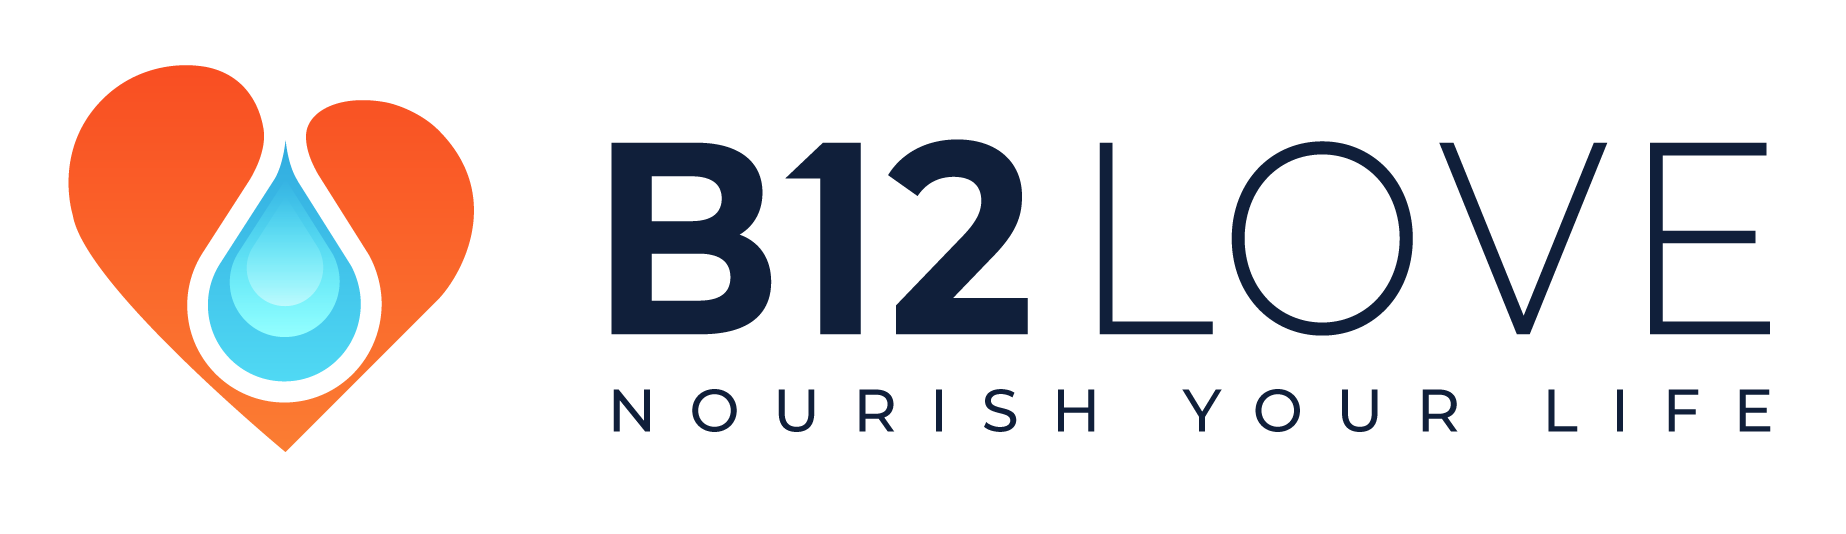 B12 LOVE. Nourish Your Life